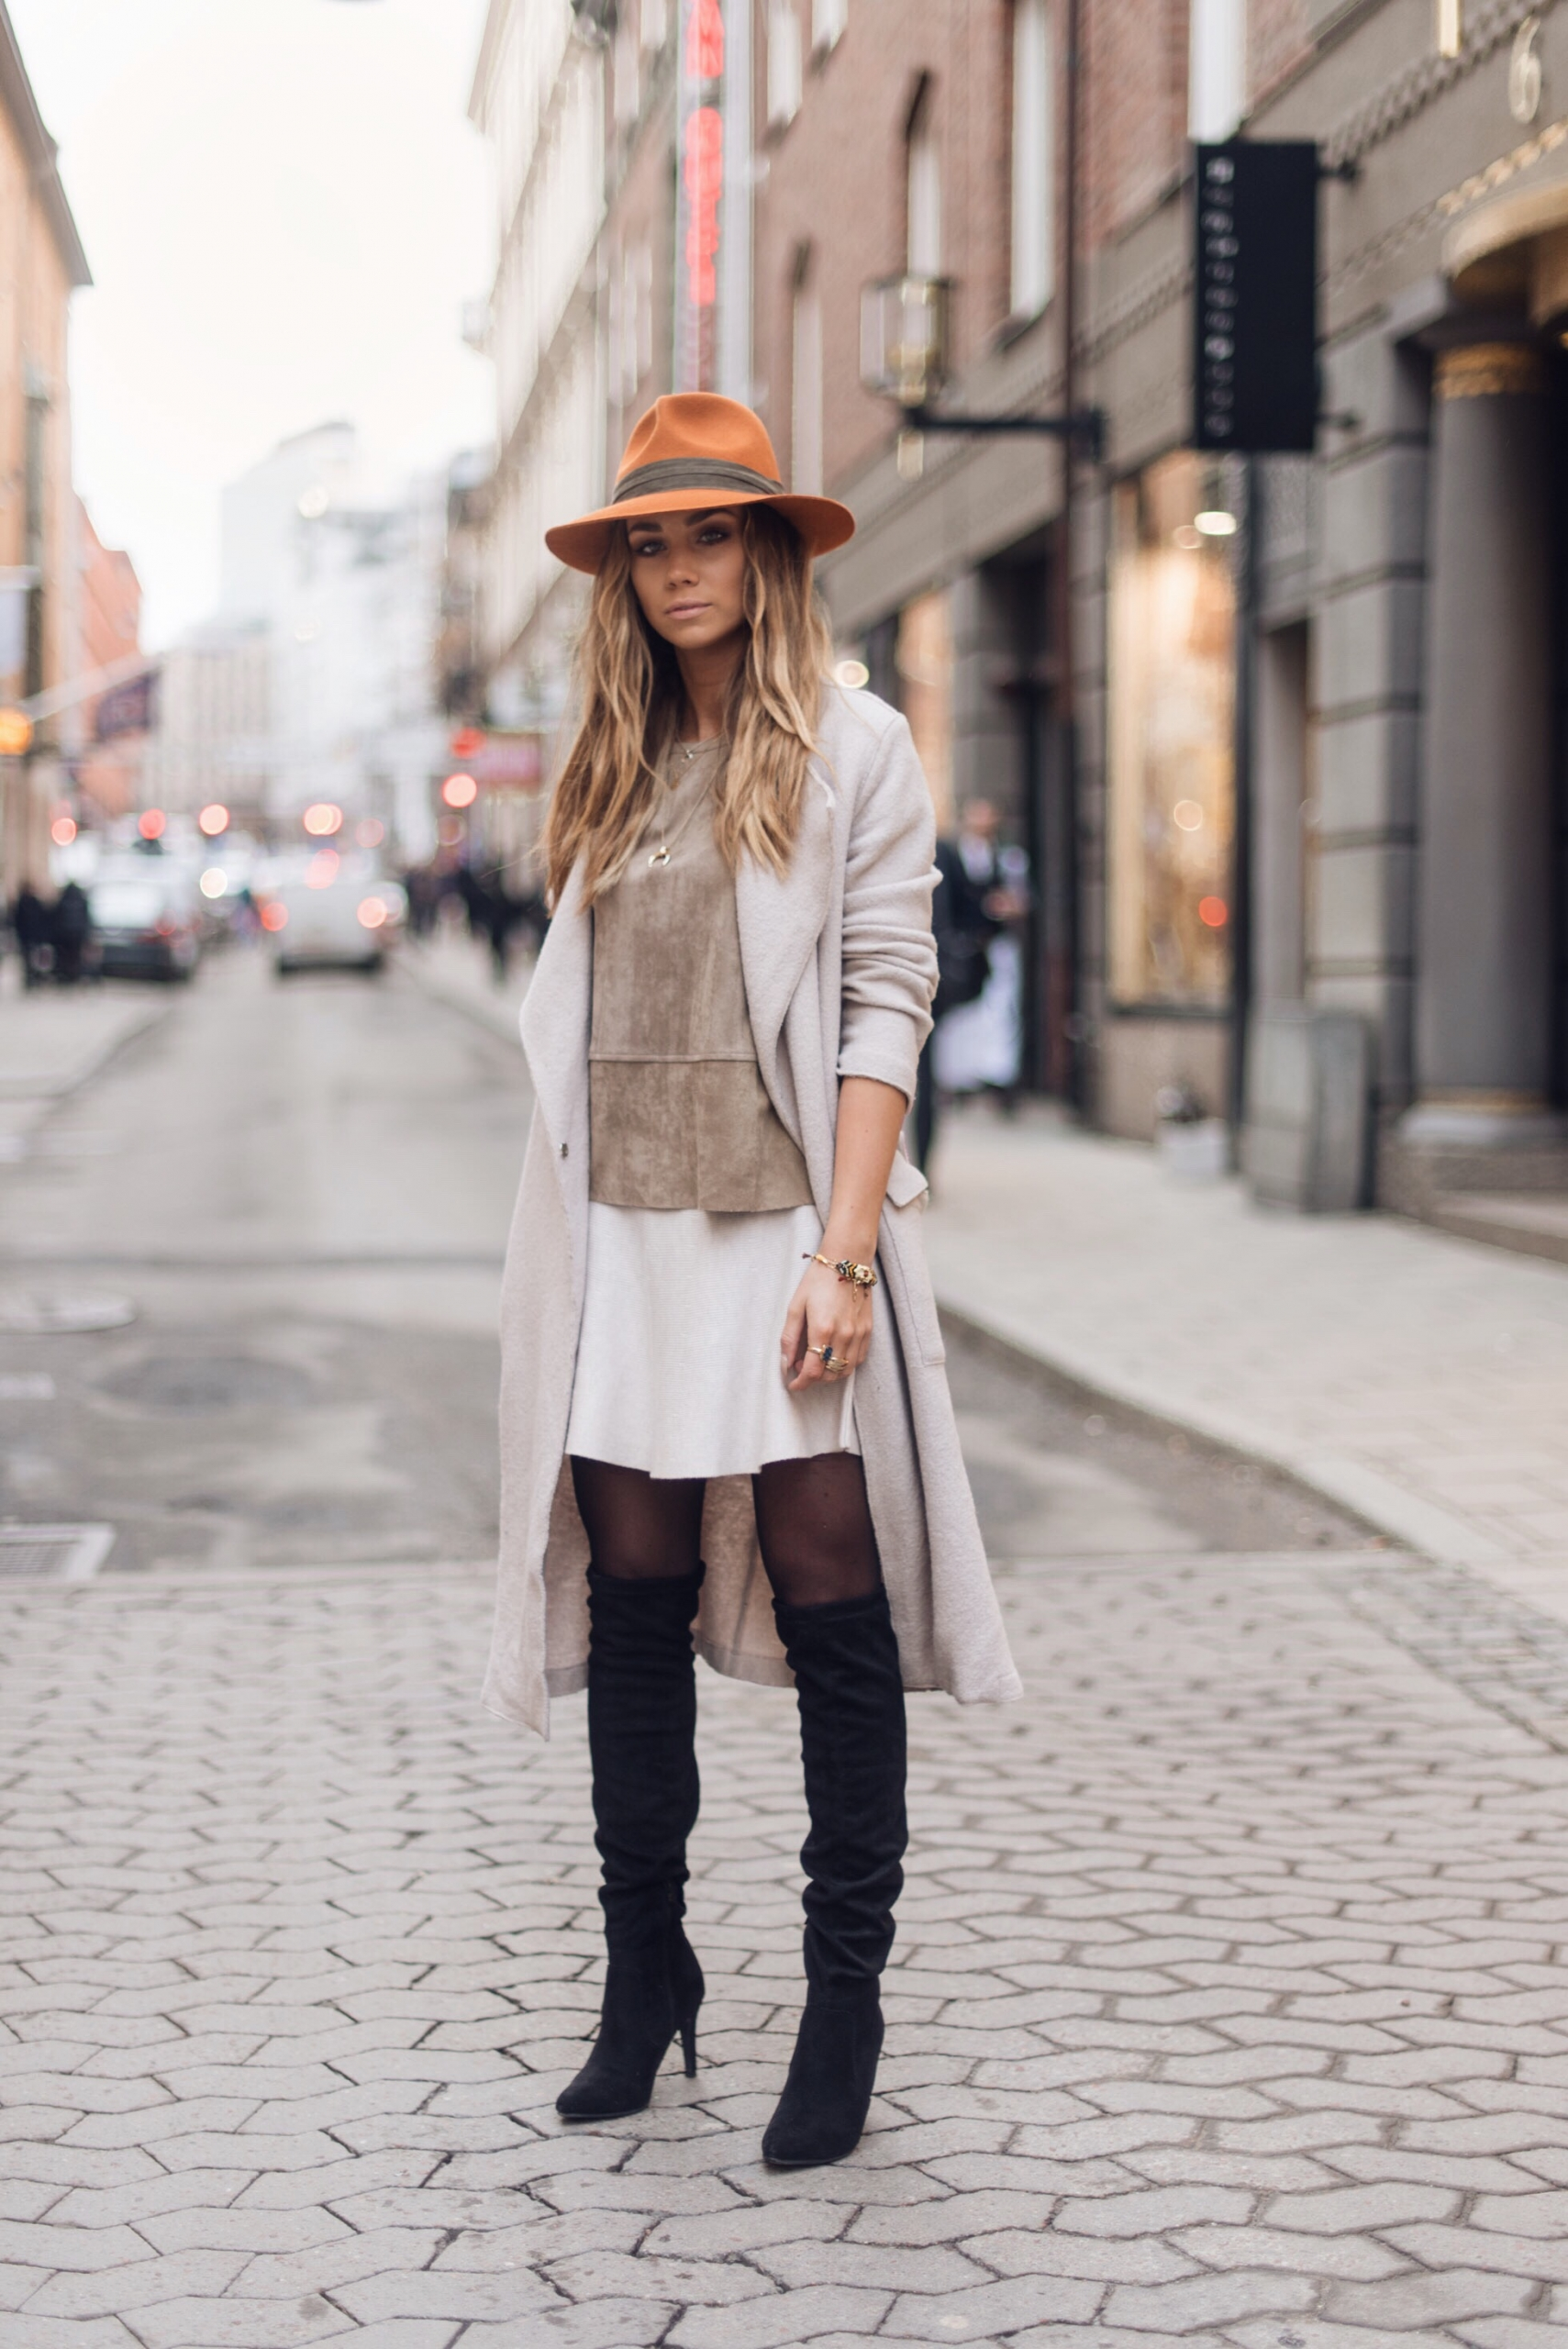 Lisa Olsson shows us how to wear thigh high boots with a skirt through this stylish combination of a cute white skirt and an earthy toned suede top. Wear this look with a statement fedora if you want to recreate Lisa's look exactly! Top: Neo Noir. Skirt: Gina Tricot, Shoes: Din sko, Coat: Filippa K.